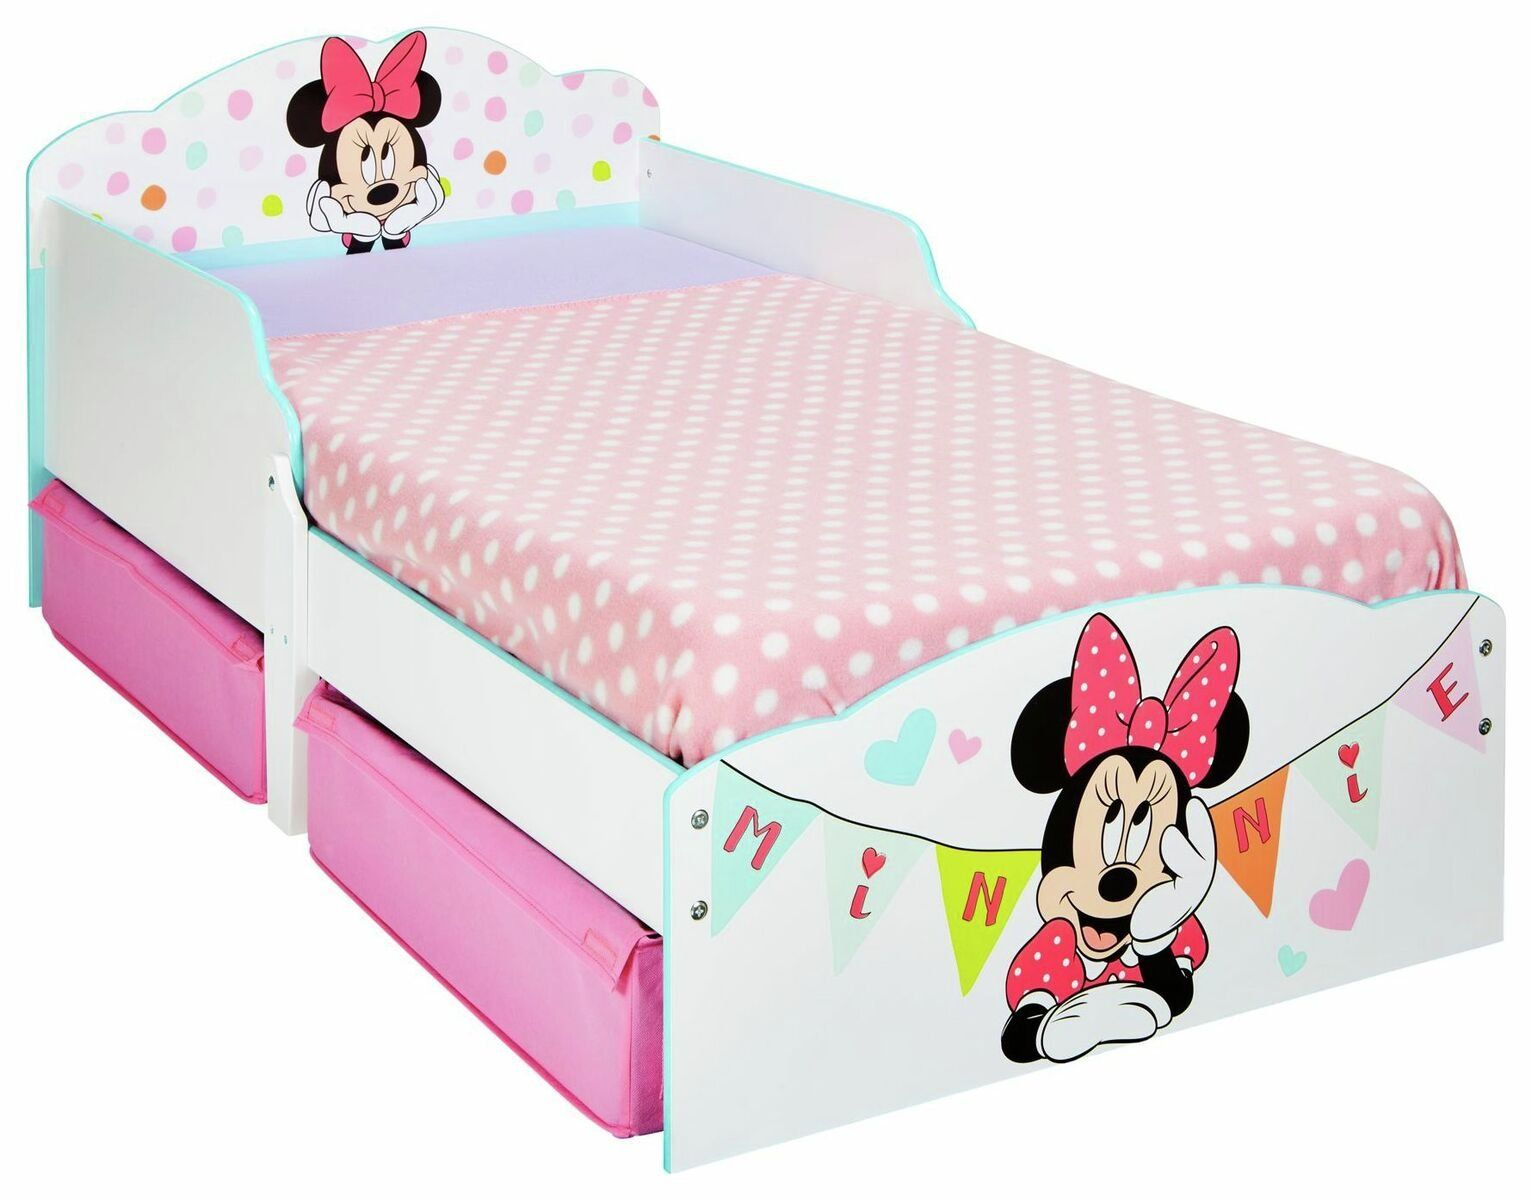 Minnie Mouse Toddler Bed With Drawers In 2020 Toddler Bed With